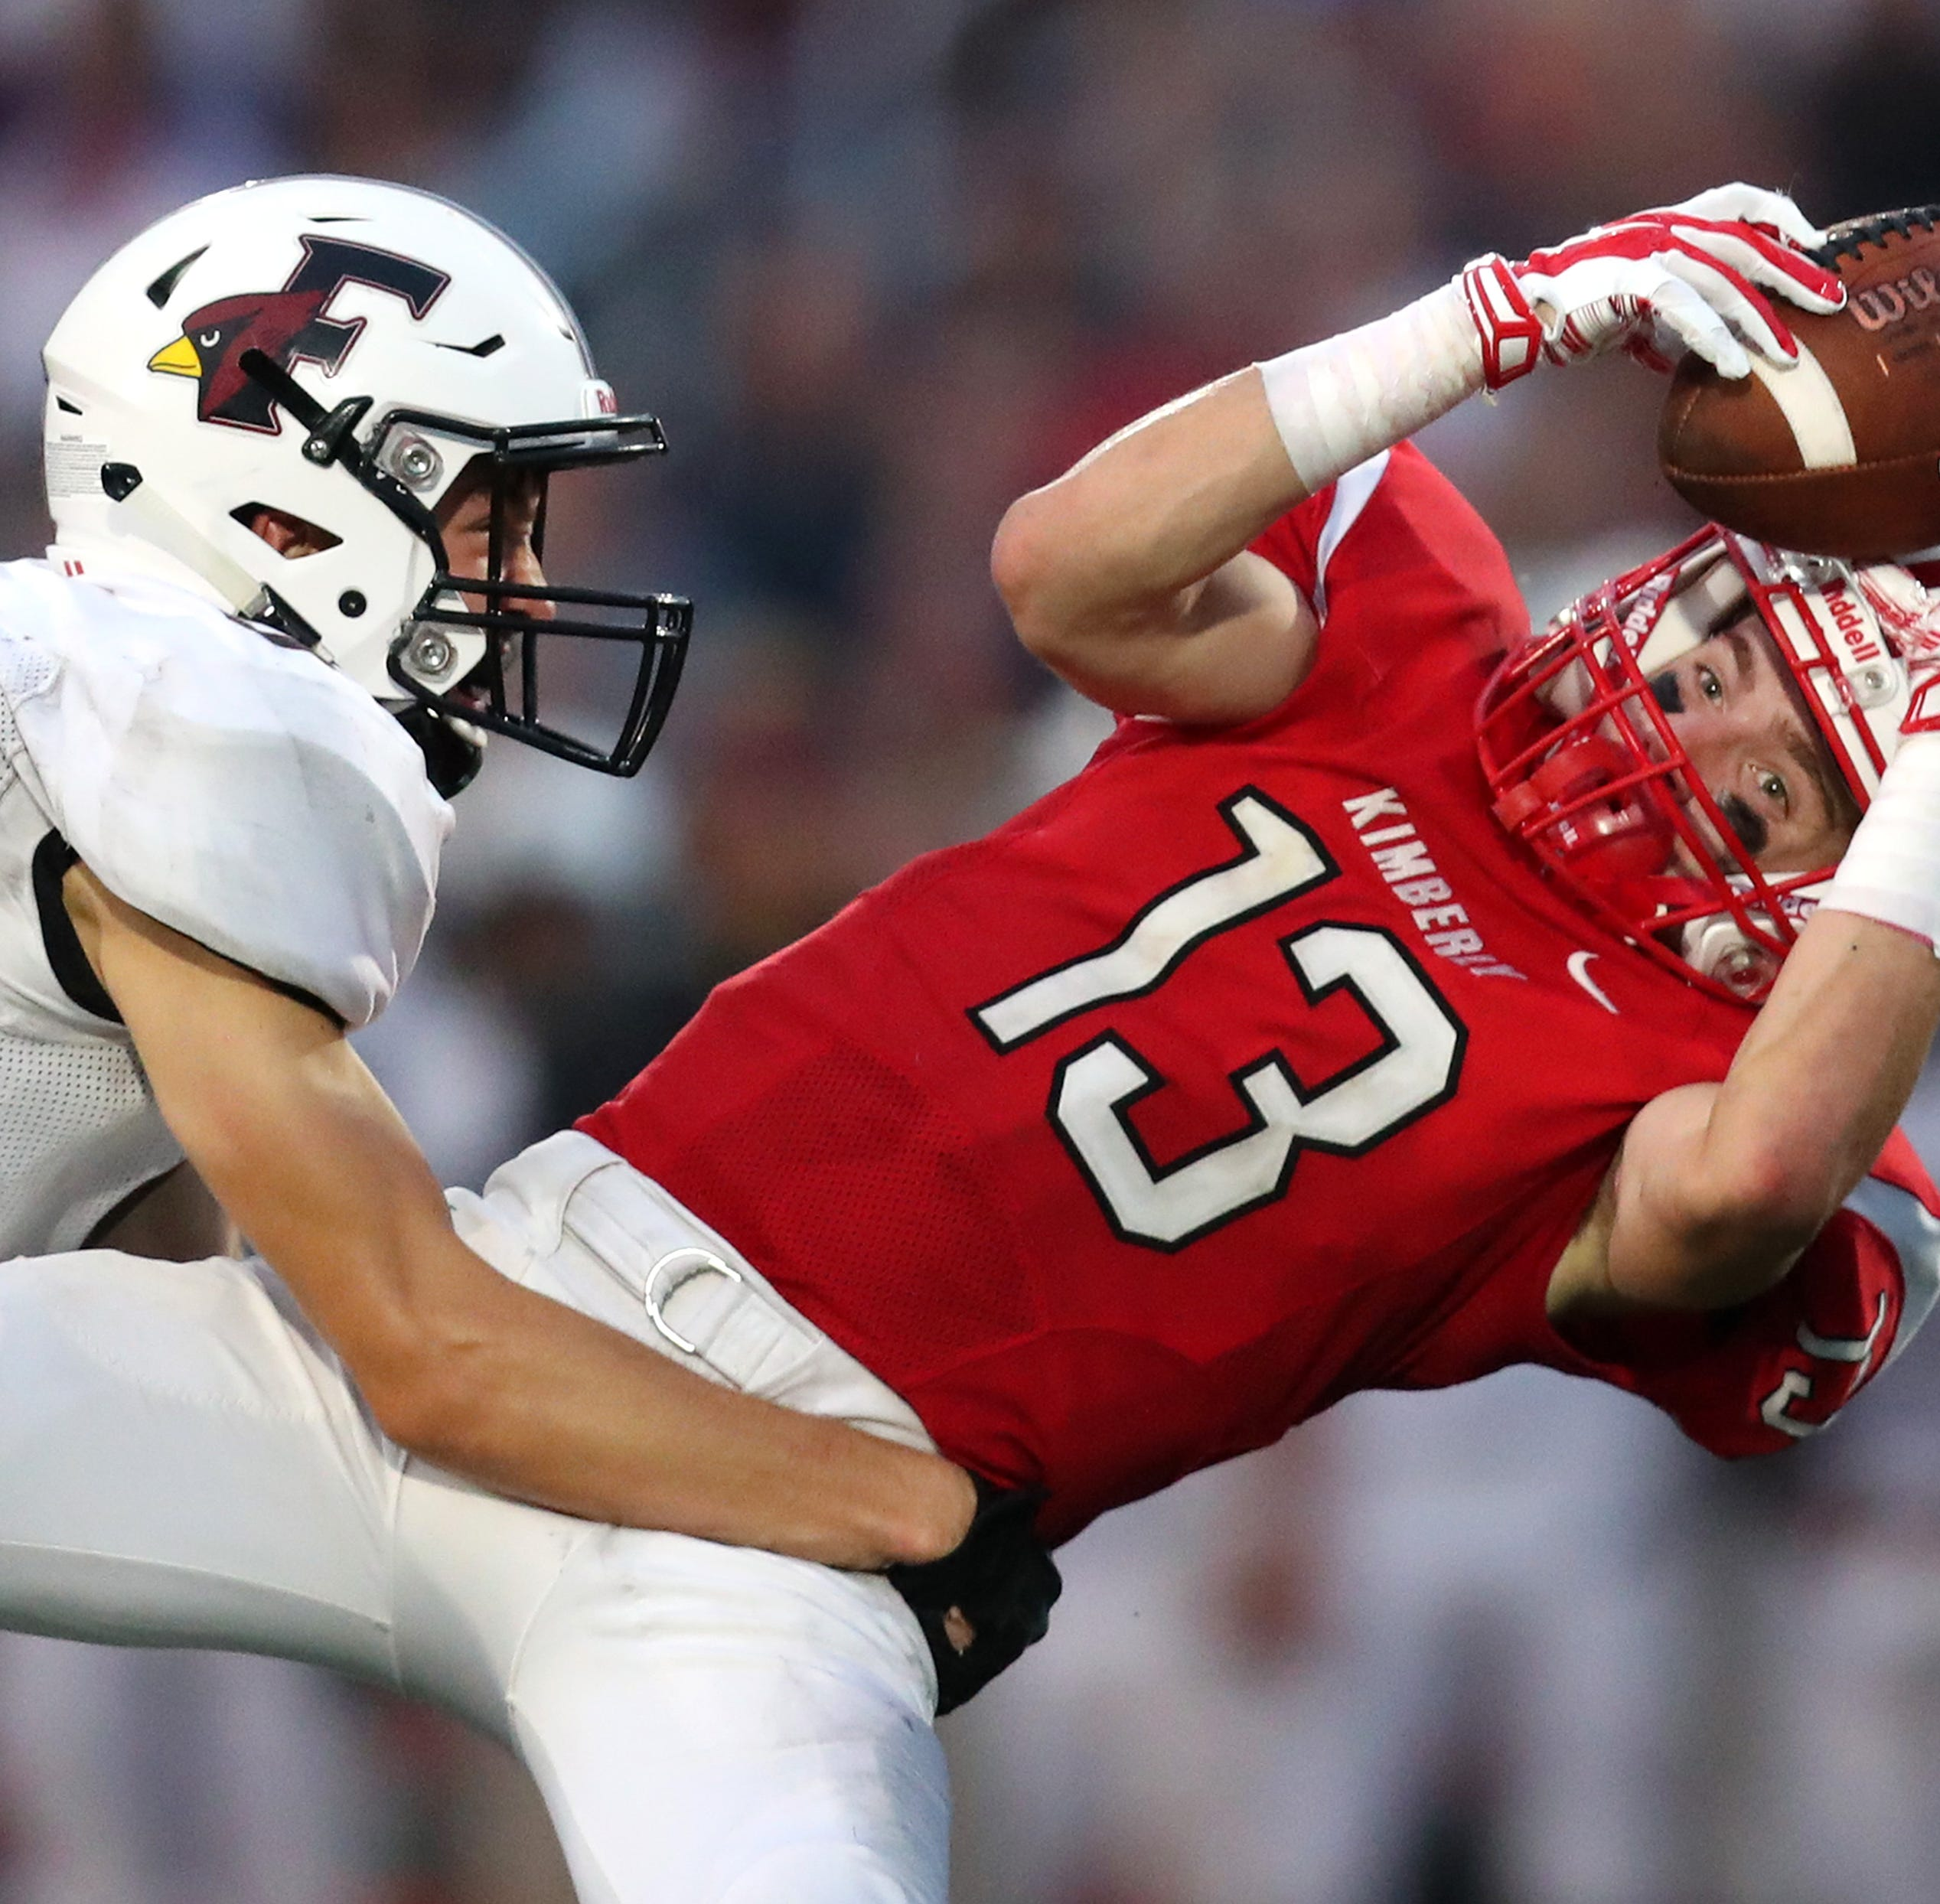 High school football: Five takeaways from Friday's games